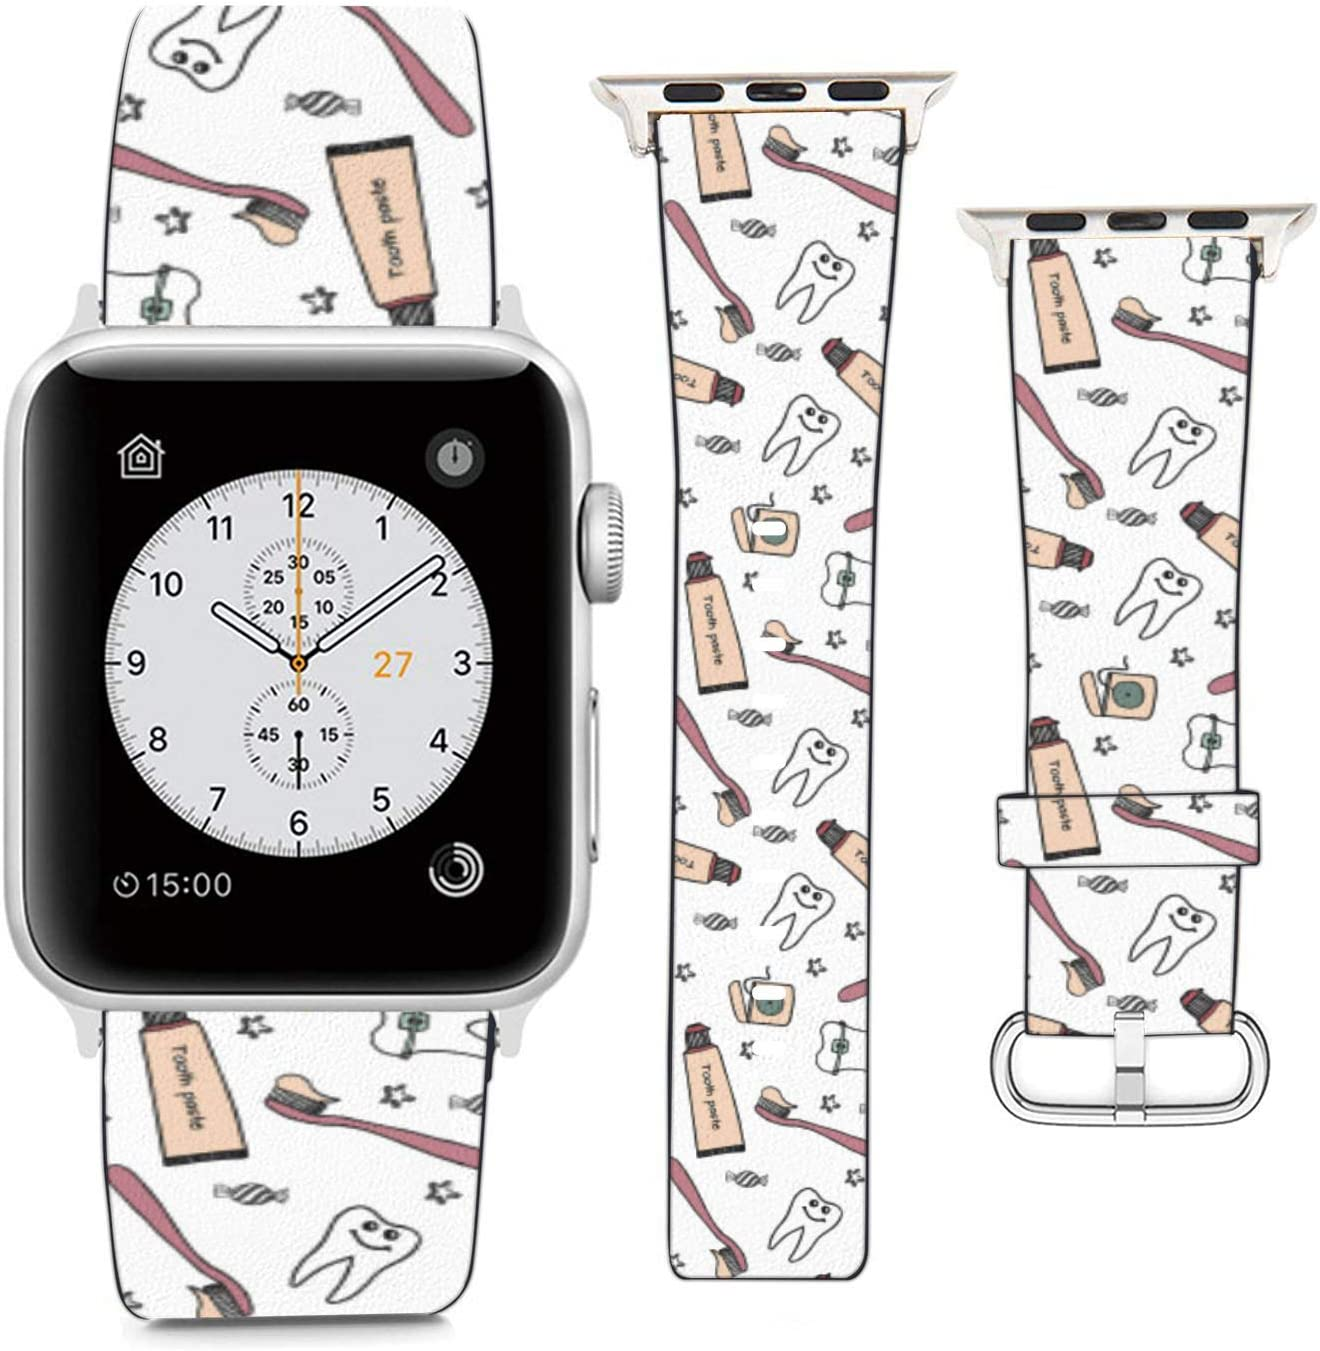 Replacement Leather Strap Printing Wristbands Compatible with Apple Watch Series 5/4 / 3/2 / 1 (42mm / 44mm) - Dental Care Instruments Doodle